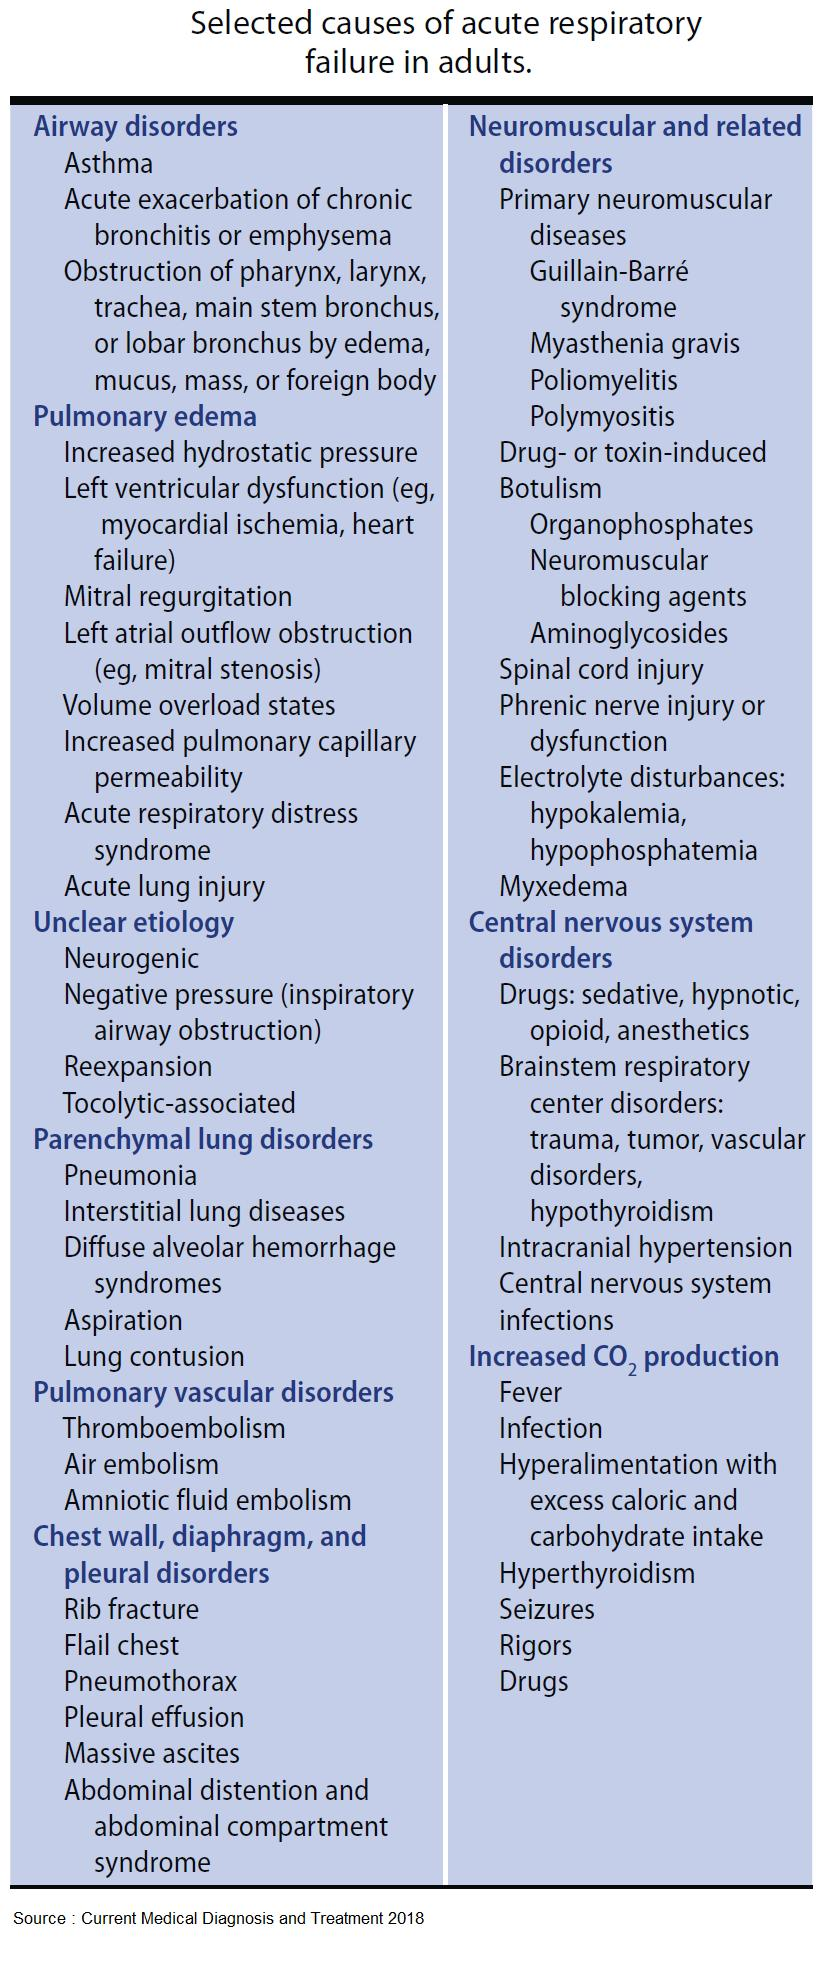 Selected causes of acute respiratory failure in adults